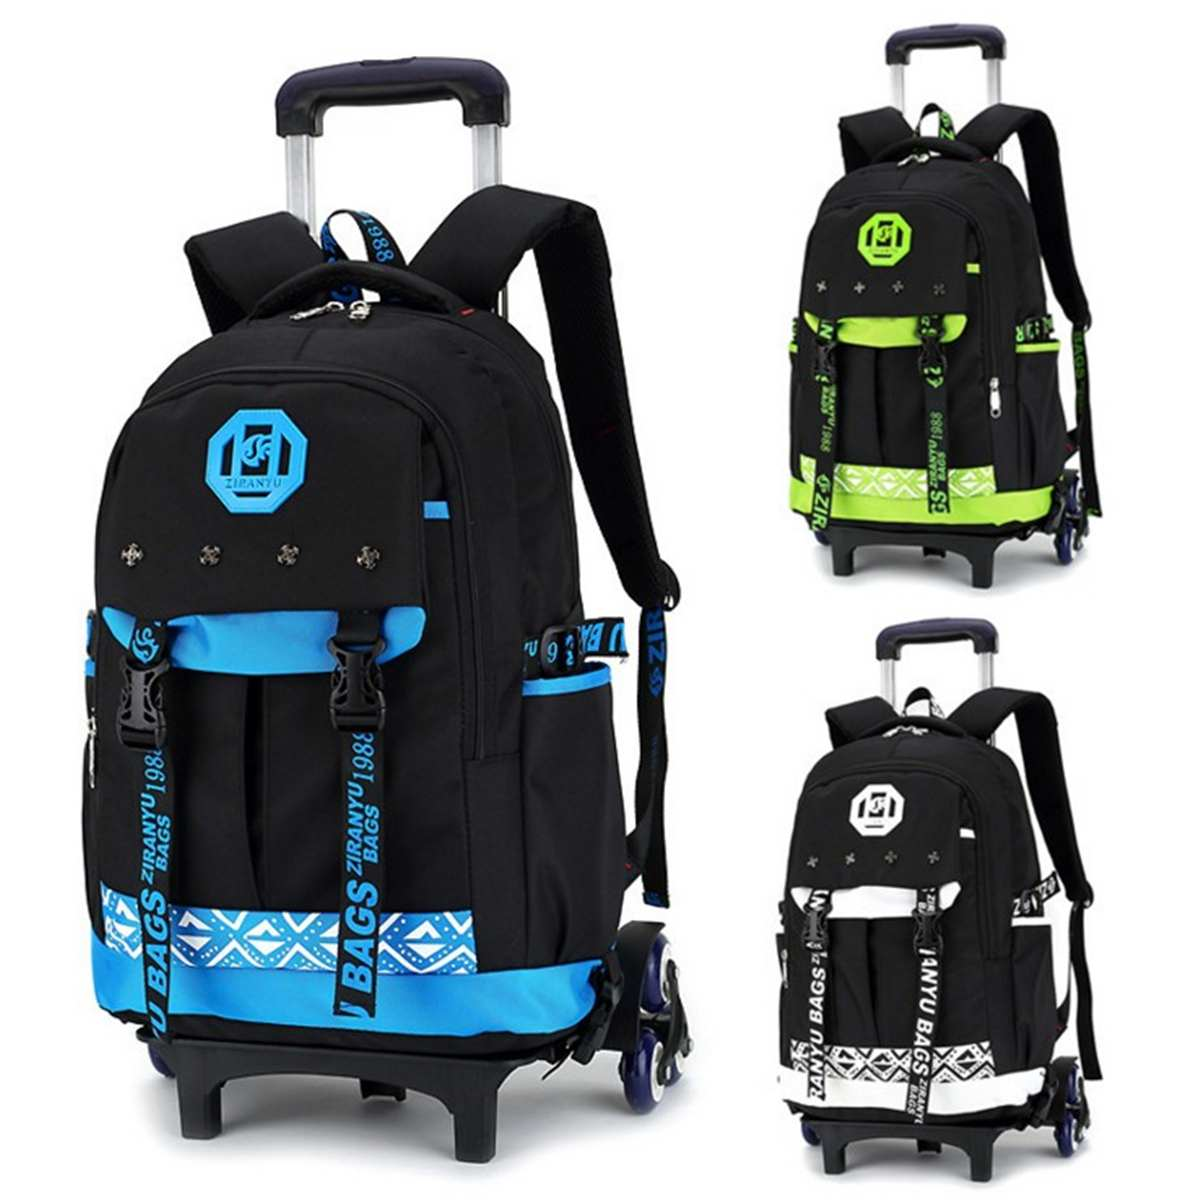 26L Rolling Men Luggage Travel Backpack Shoulder Spinner Backpacks High Capacity Wheels For Suitcase Trolley Carry On Duffle Bag